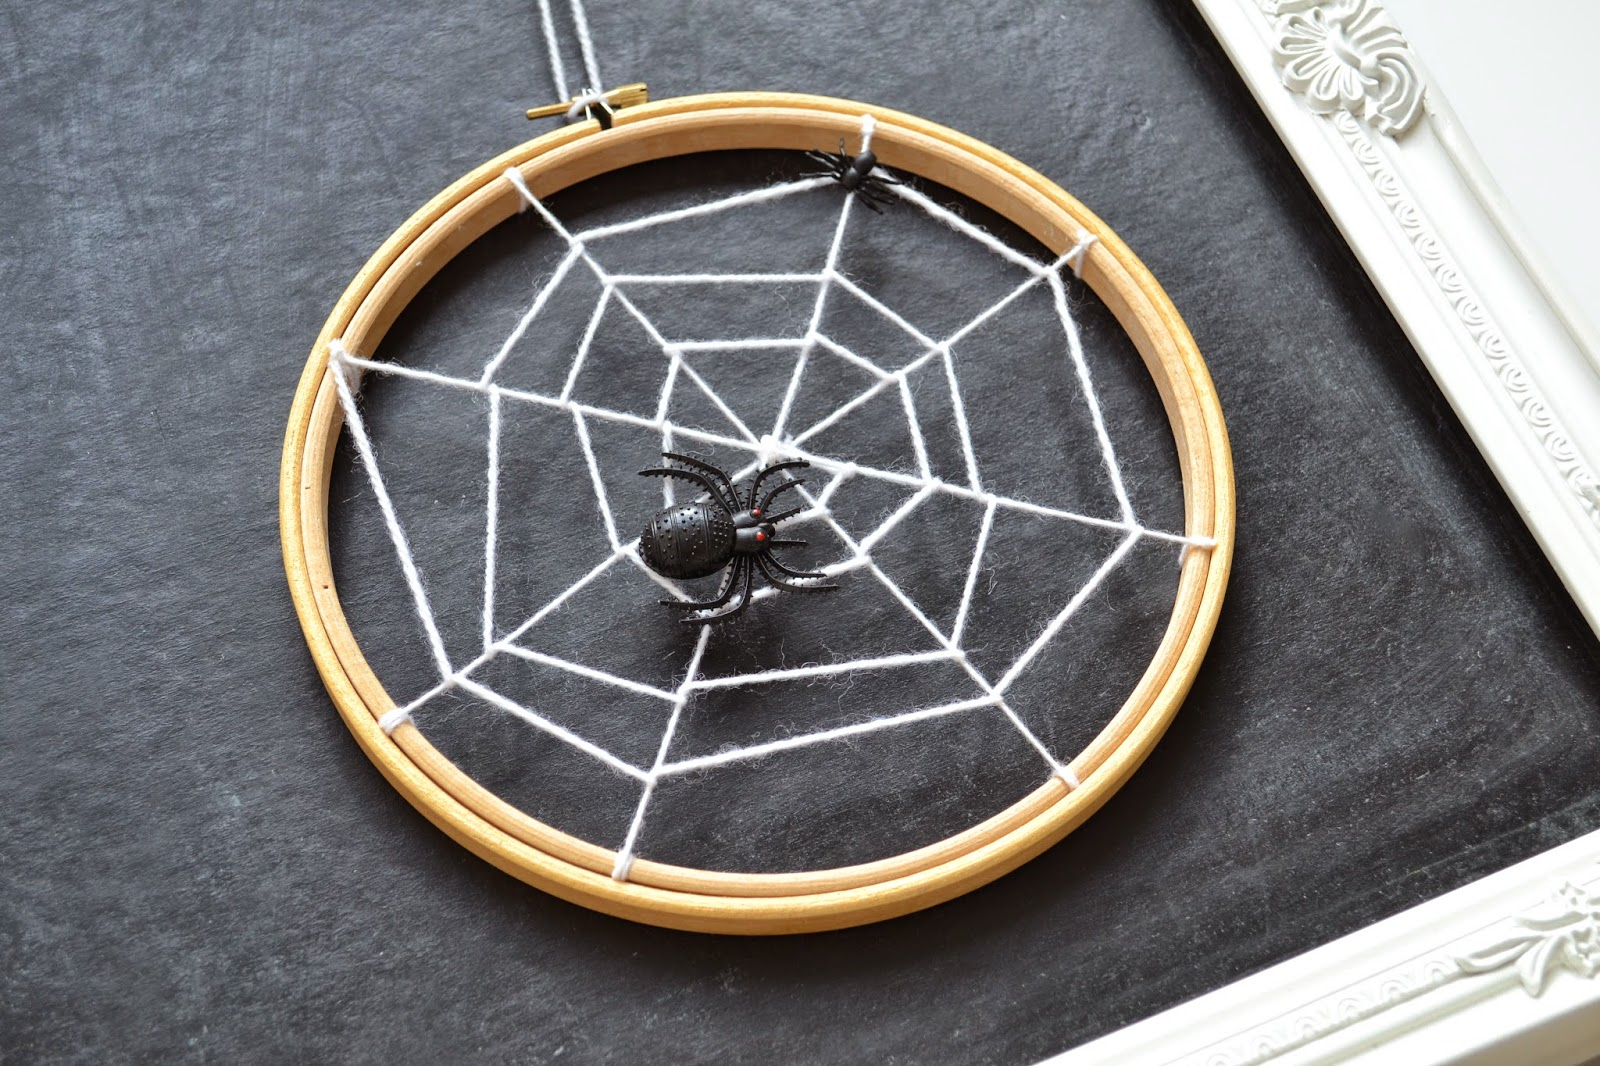 Last Minute Halloween Ideas - Embroidery Hoop Spider Web from The Things She Makes | Squirrelly Minds